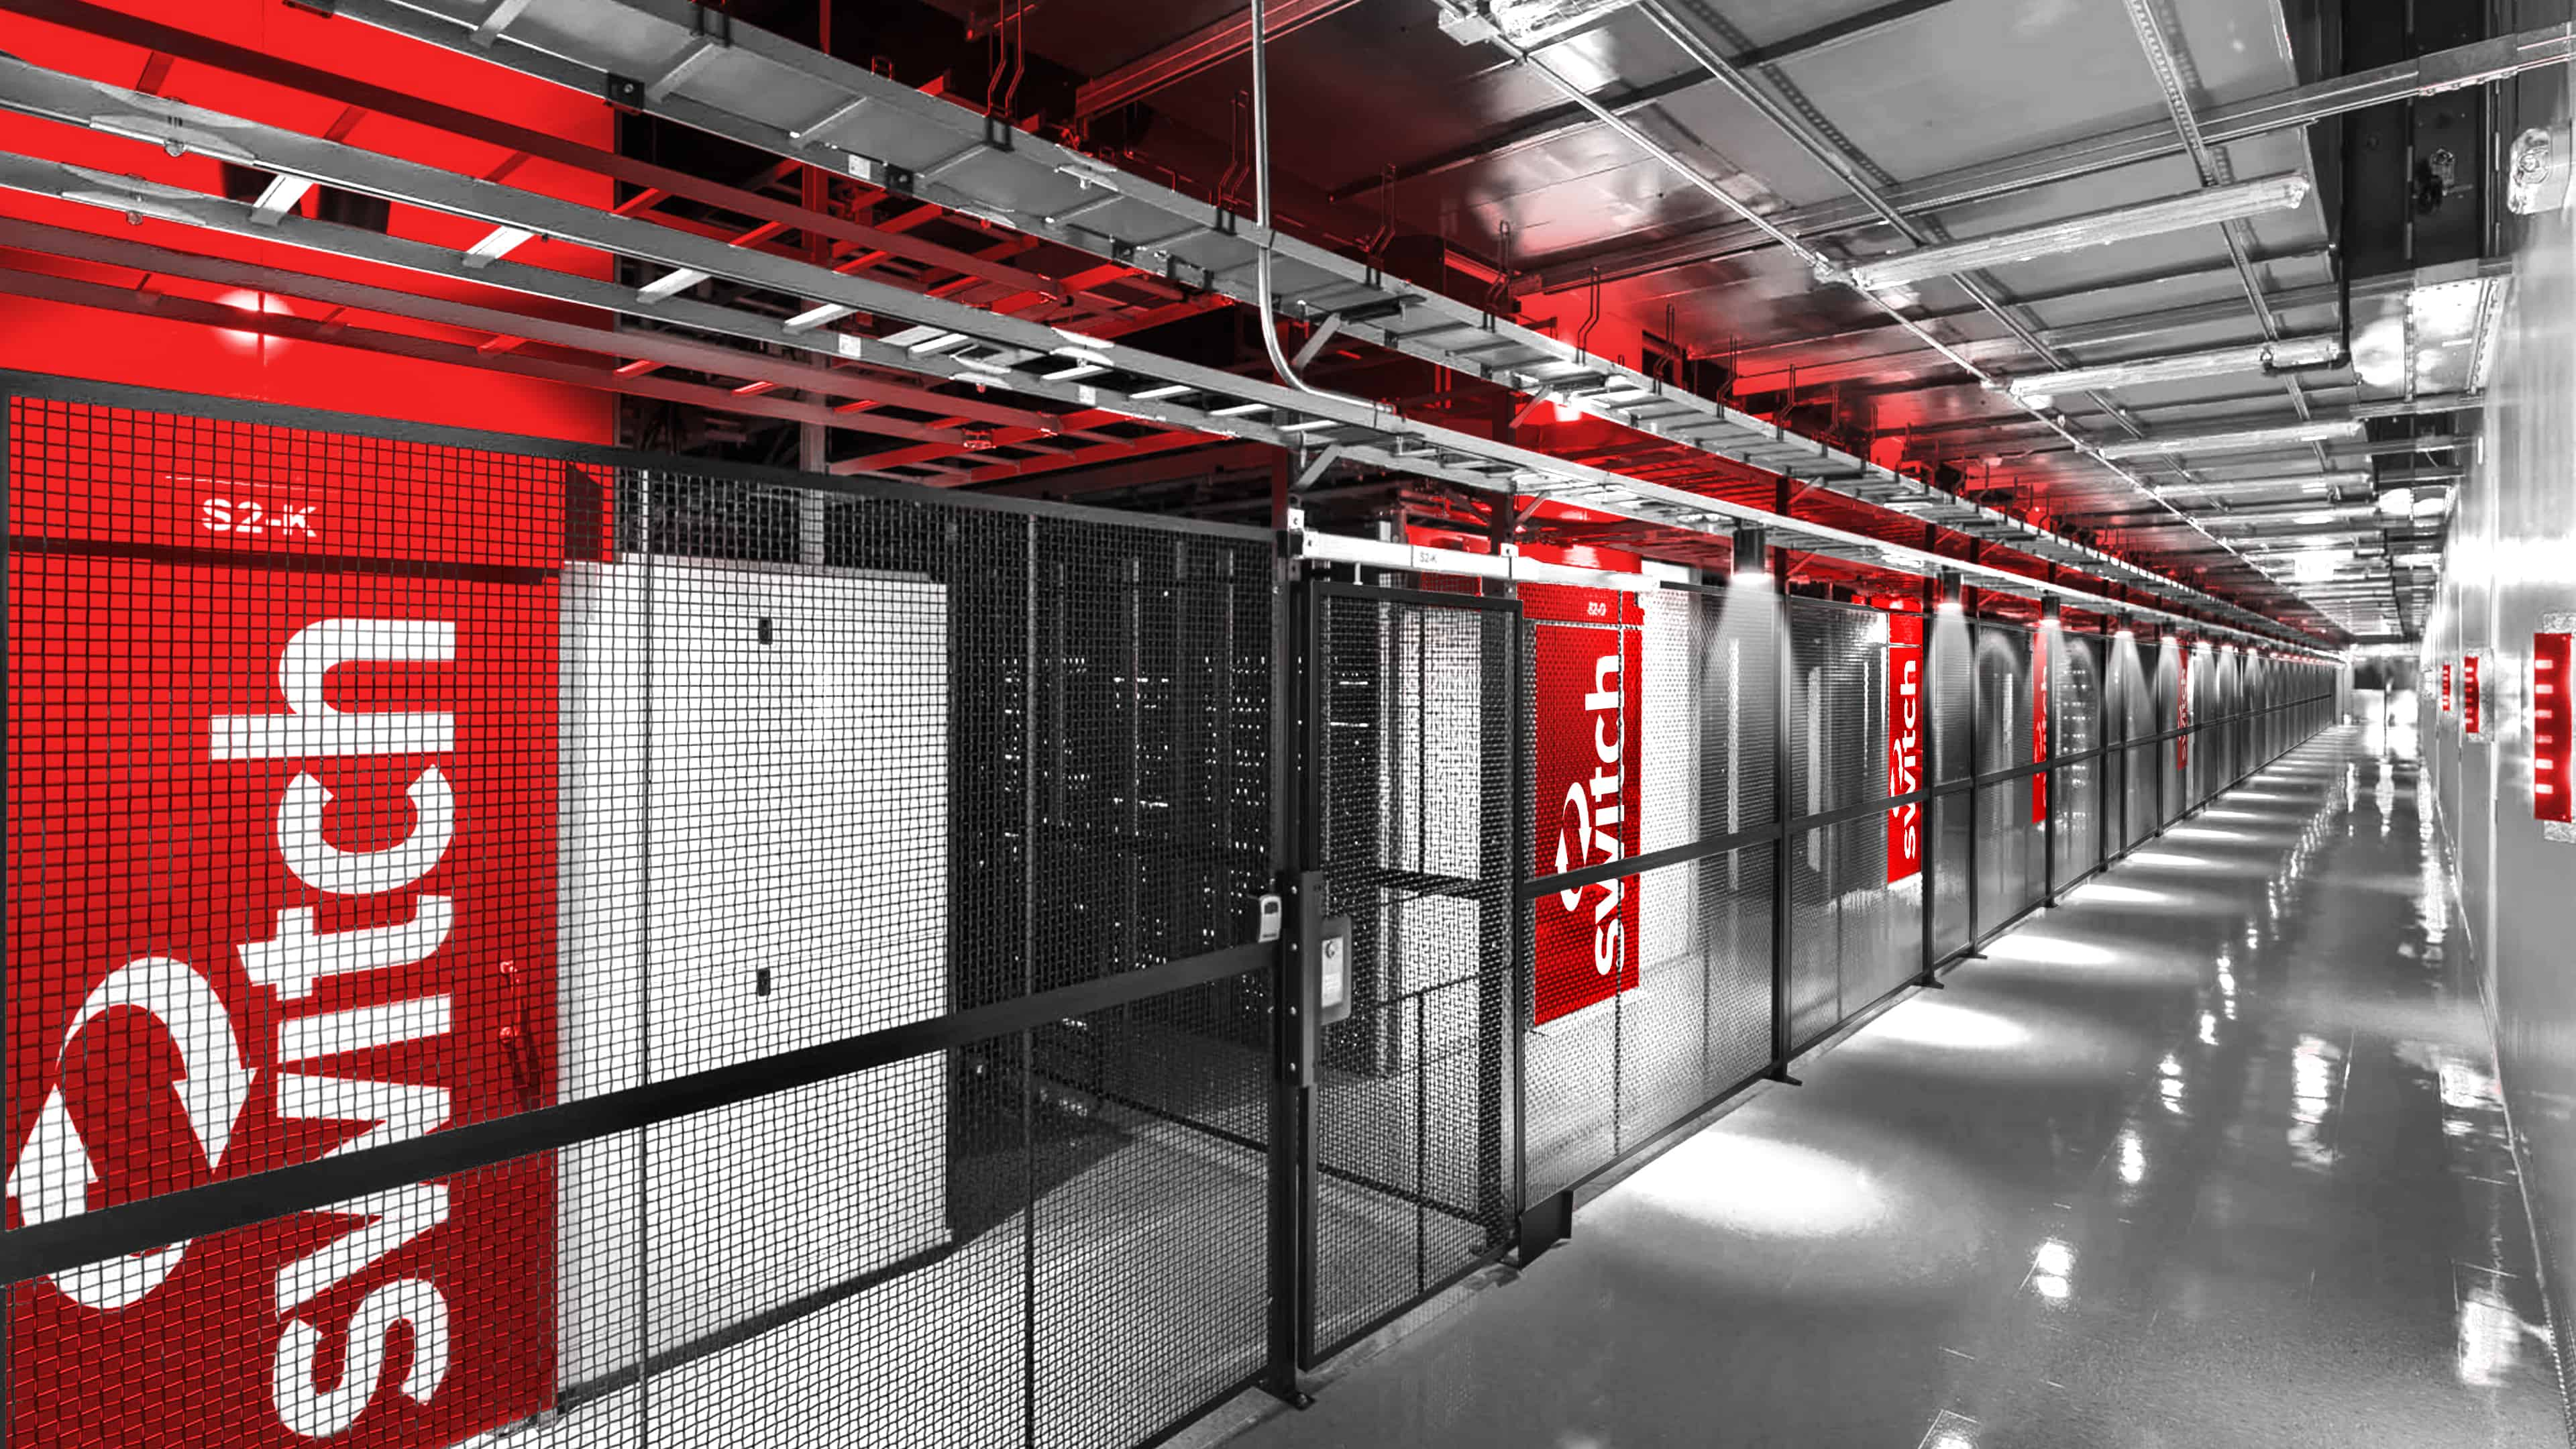 Worldpay Establishes New Data Center Presence  within Switch Hyperscale Data Center Ecosystem